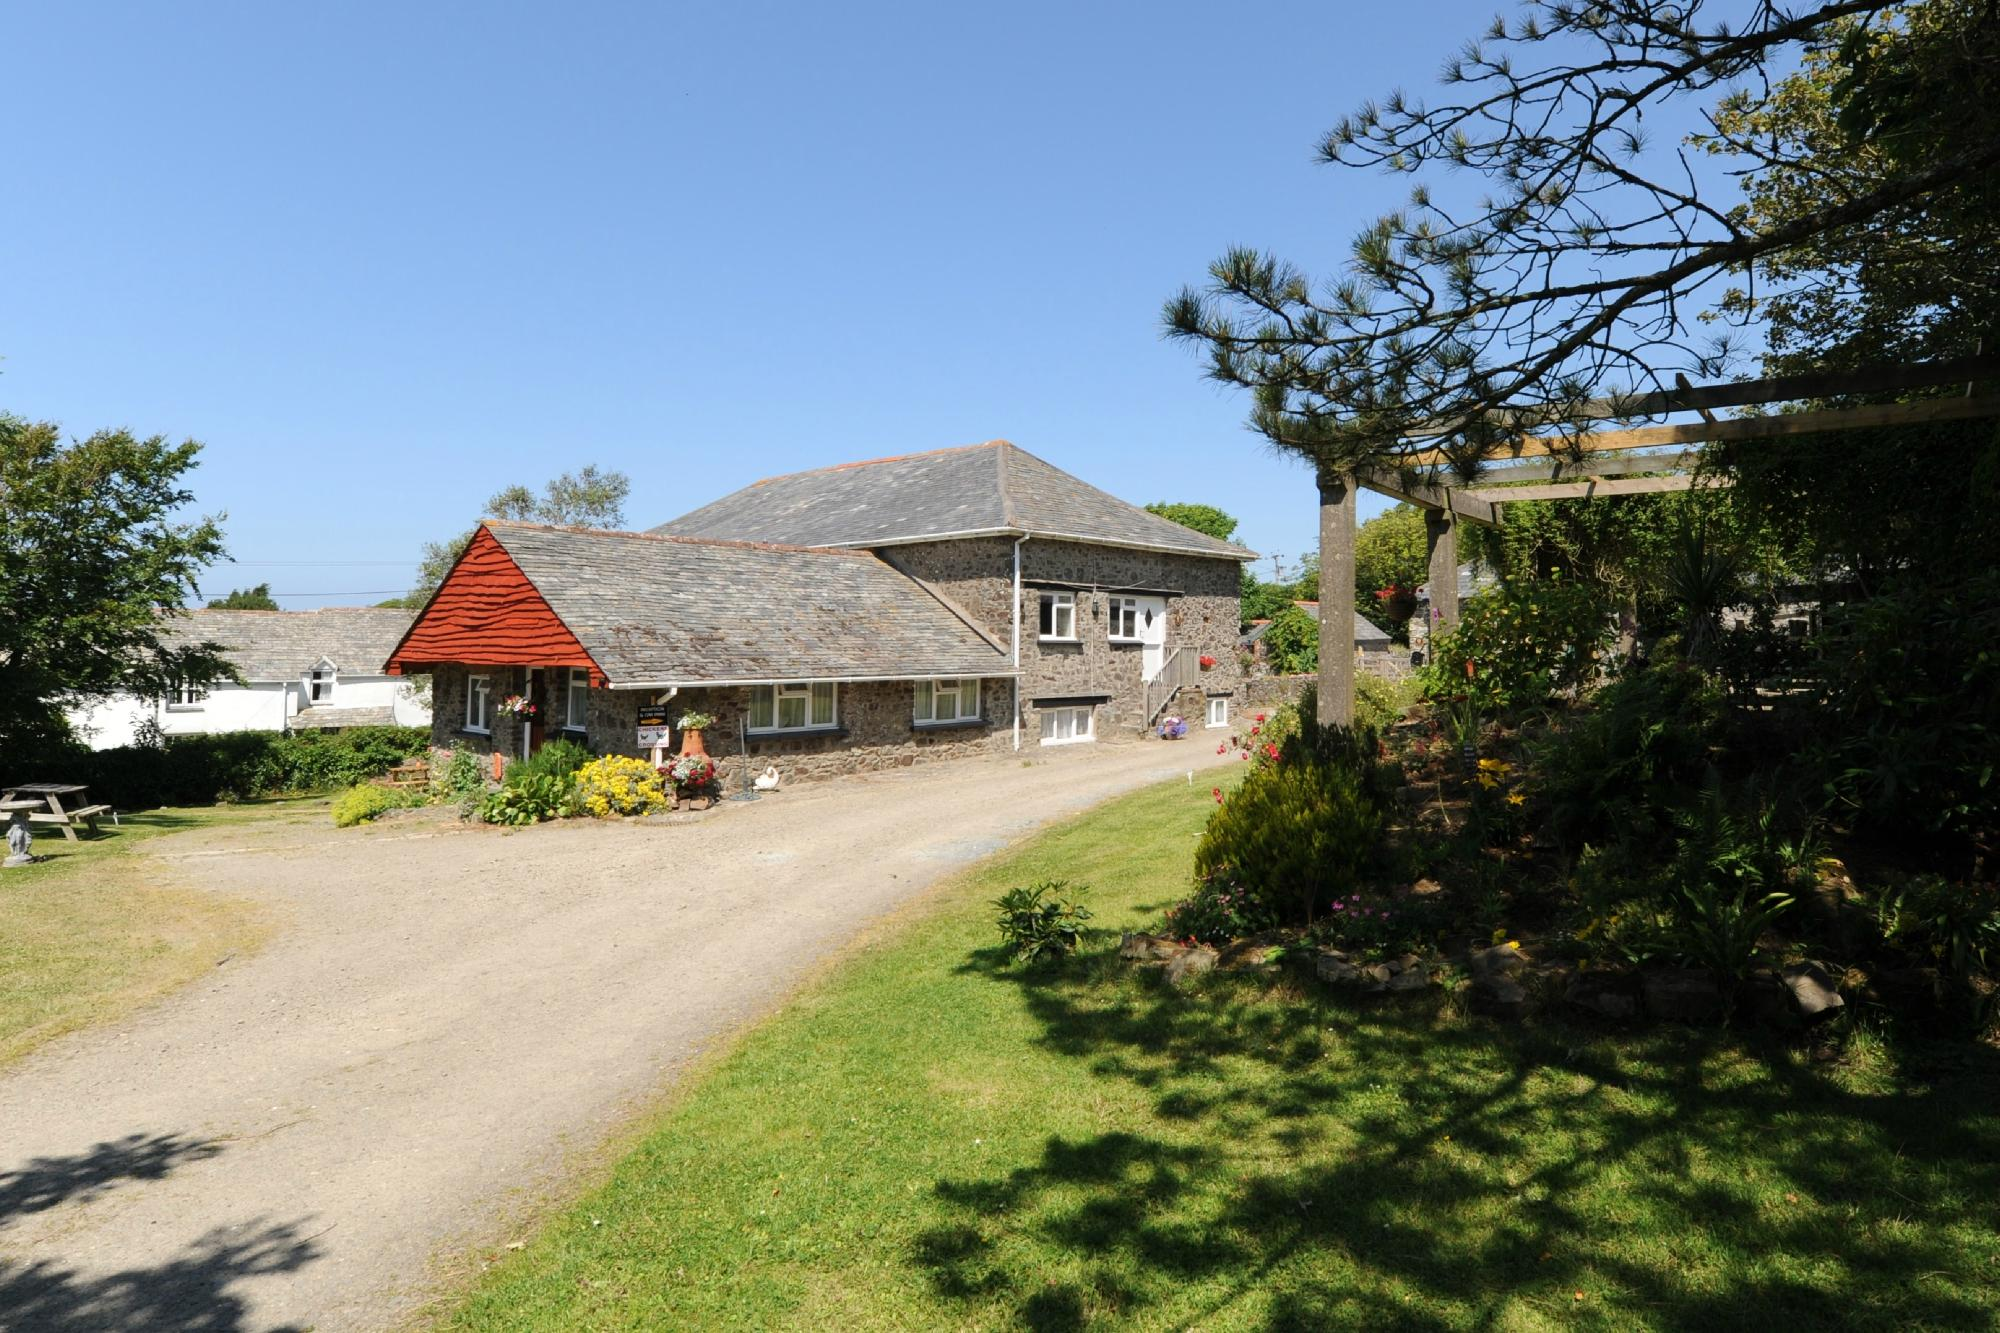 Mead Barn Holiday Cottages